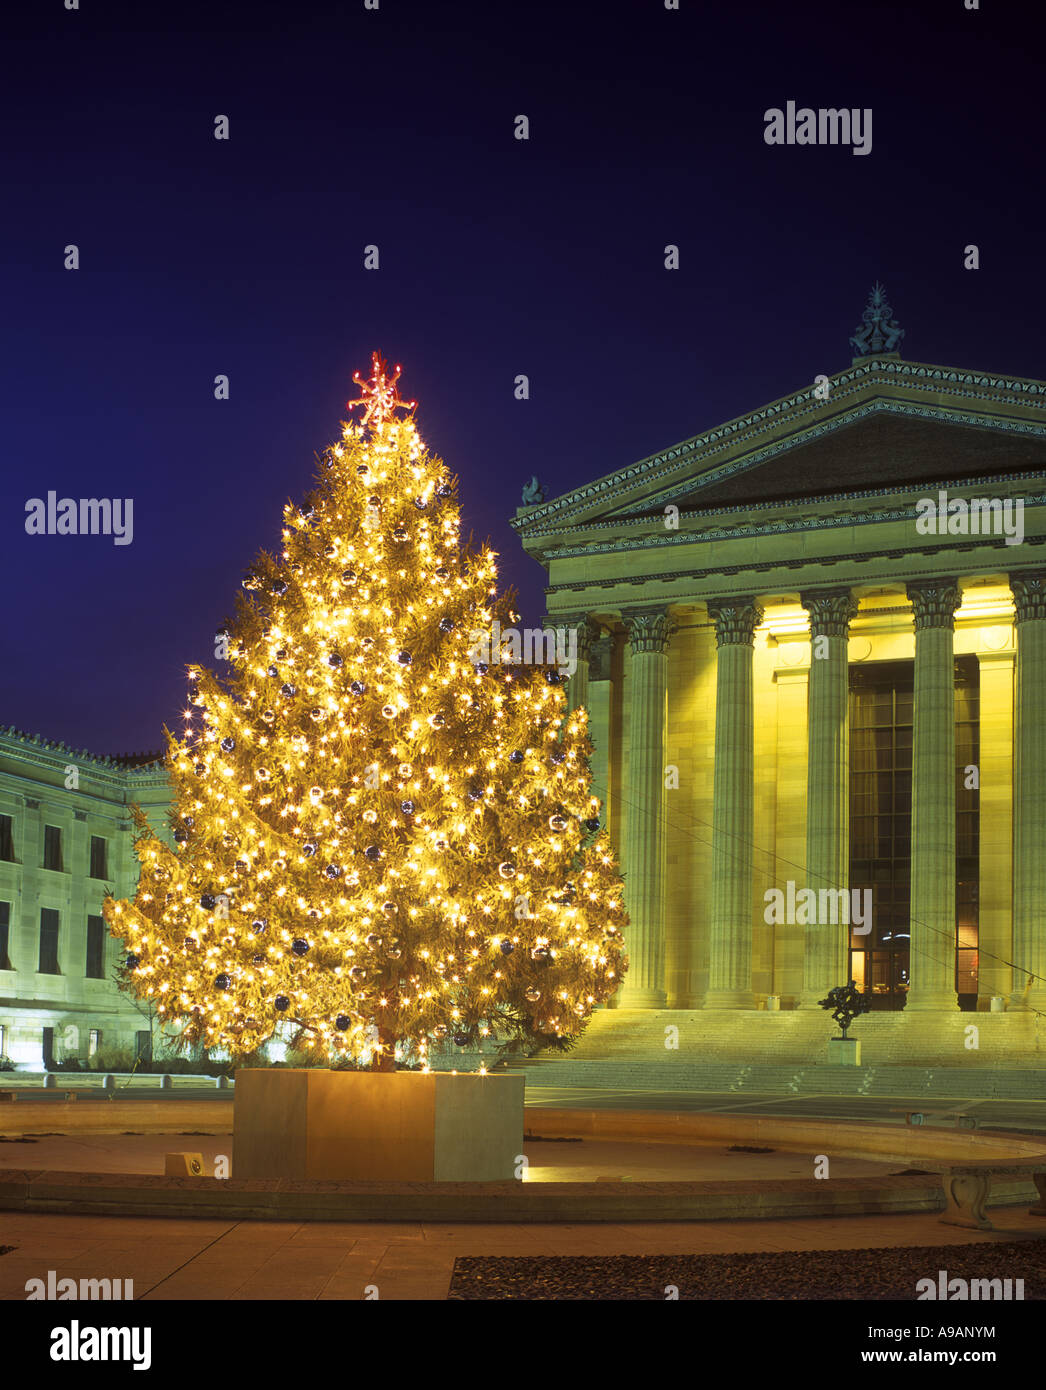 philadelphia christmas tree stock photos philadelphia christmas